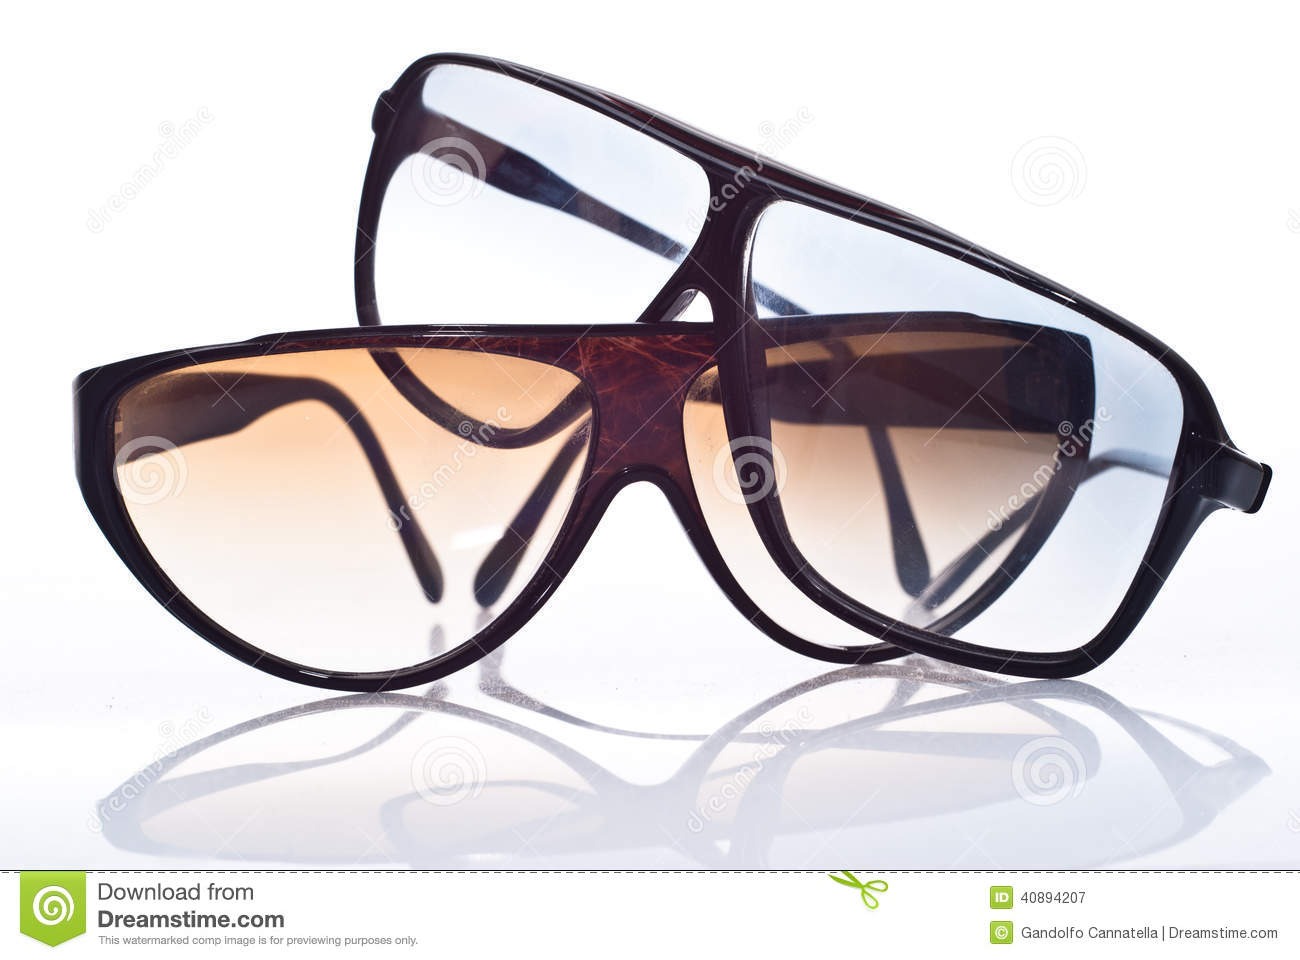 Sunglasses isolated over white